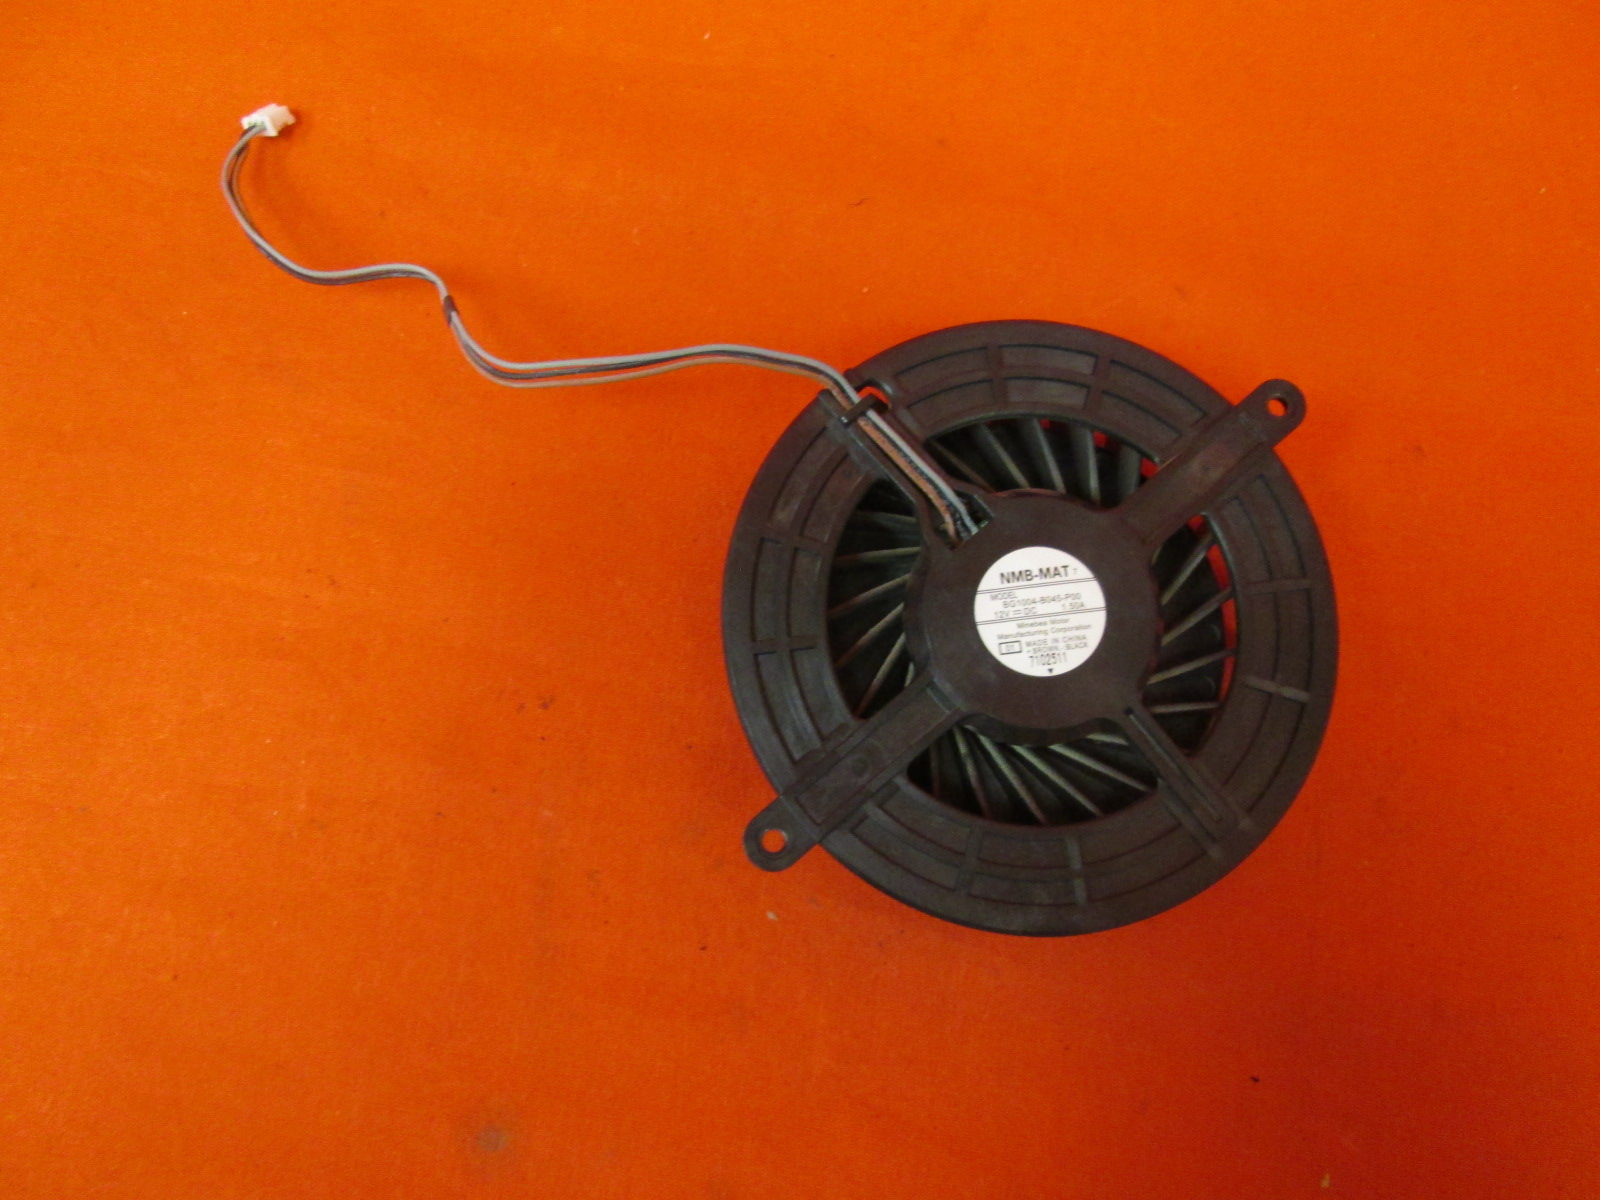 Replacement Nmb-Mat Fan BG1004-B045-P00 For PlayStation 3 PS3 Slim Fan